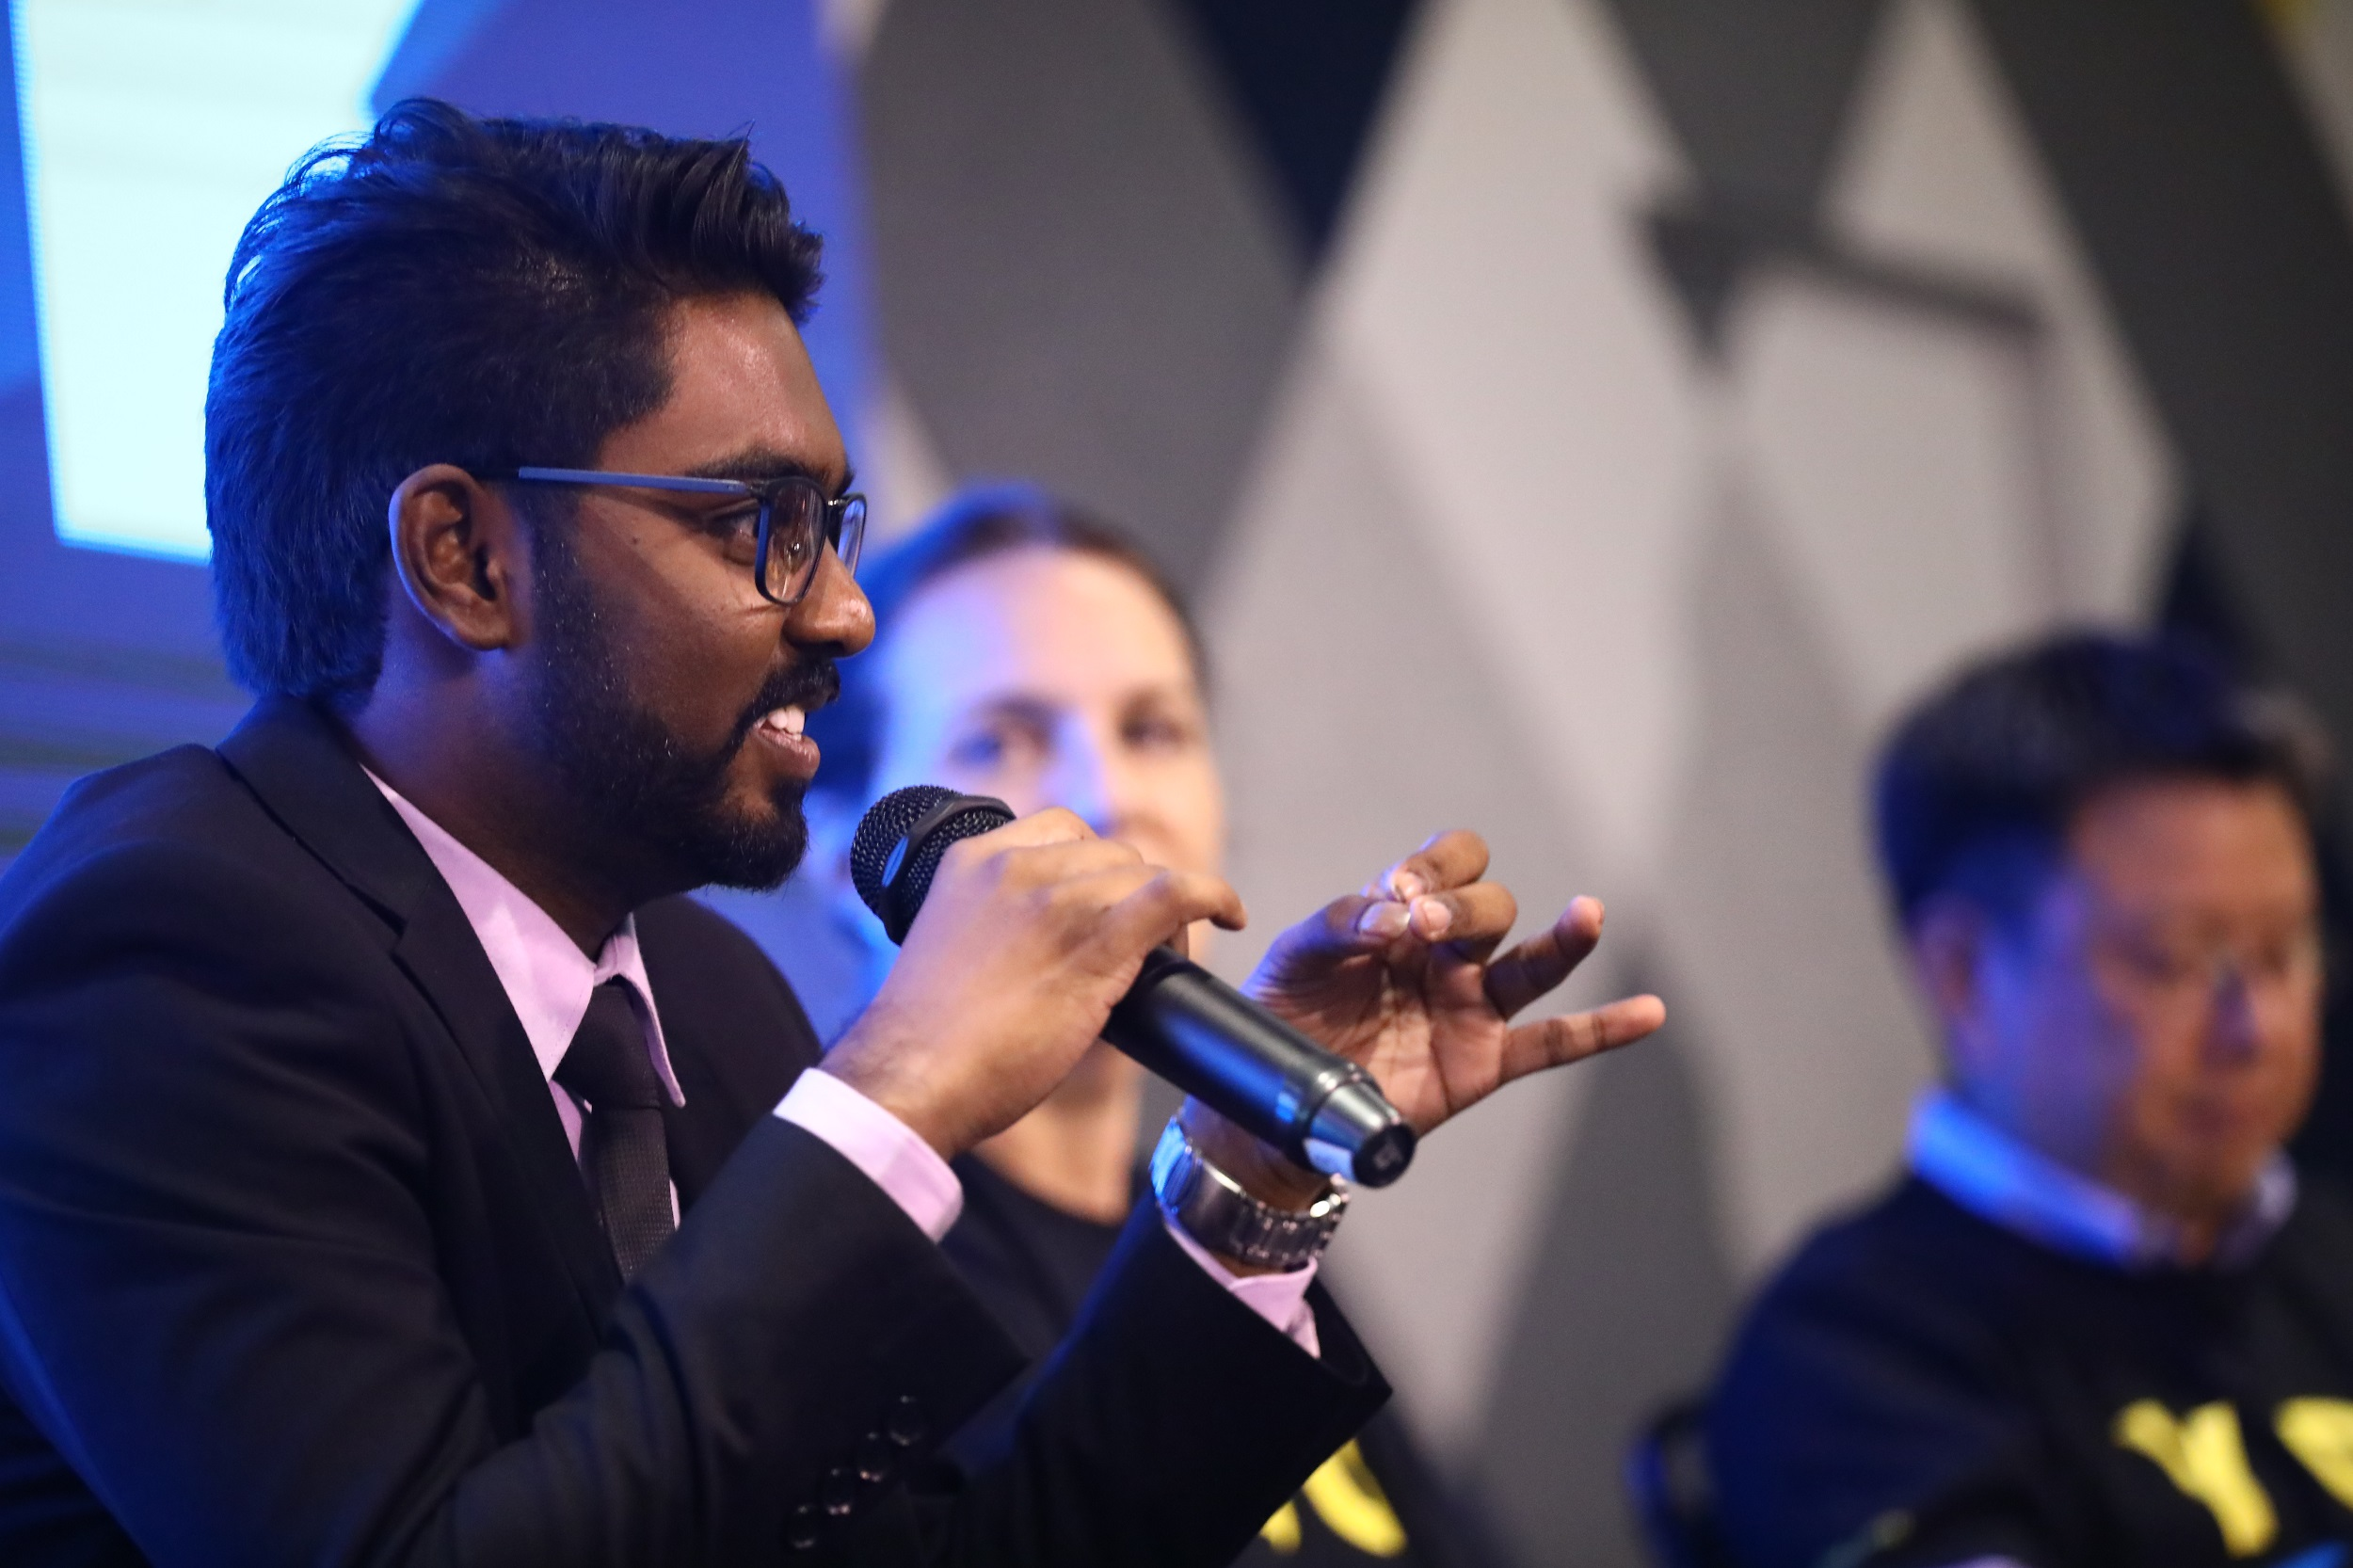 A man with a microphone speaks as people look on